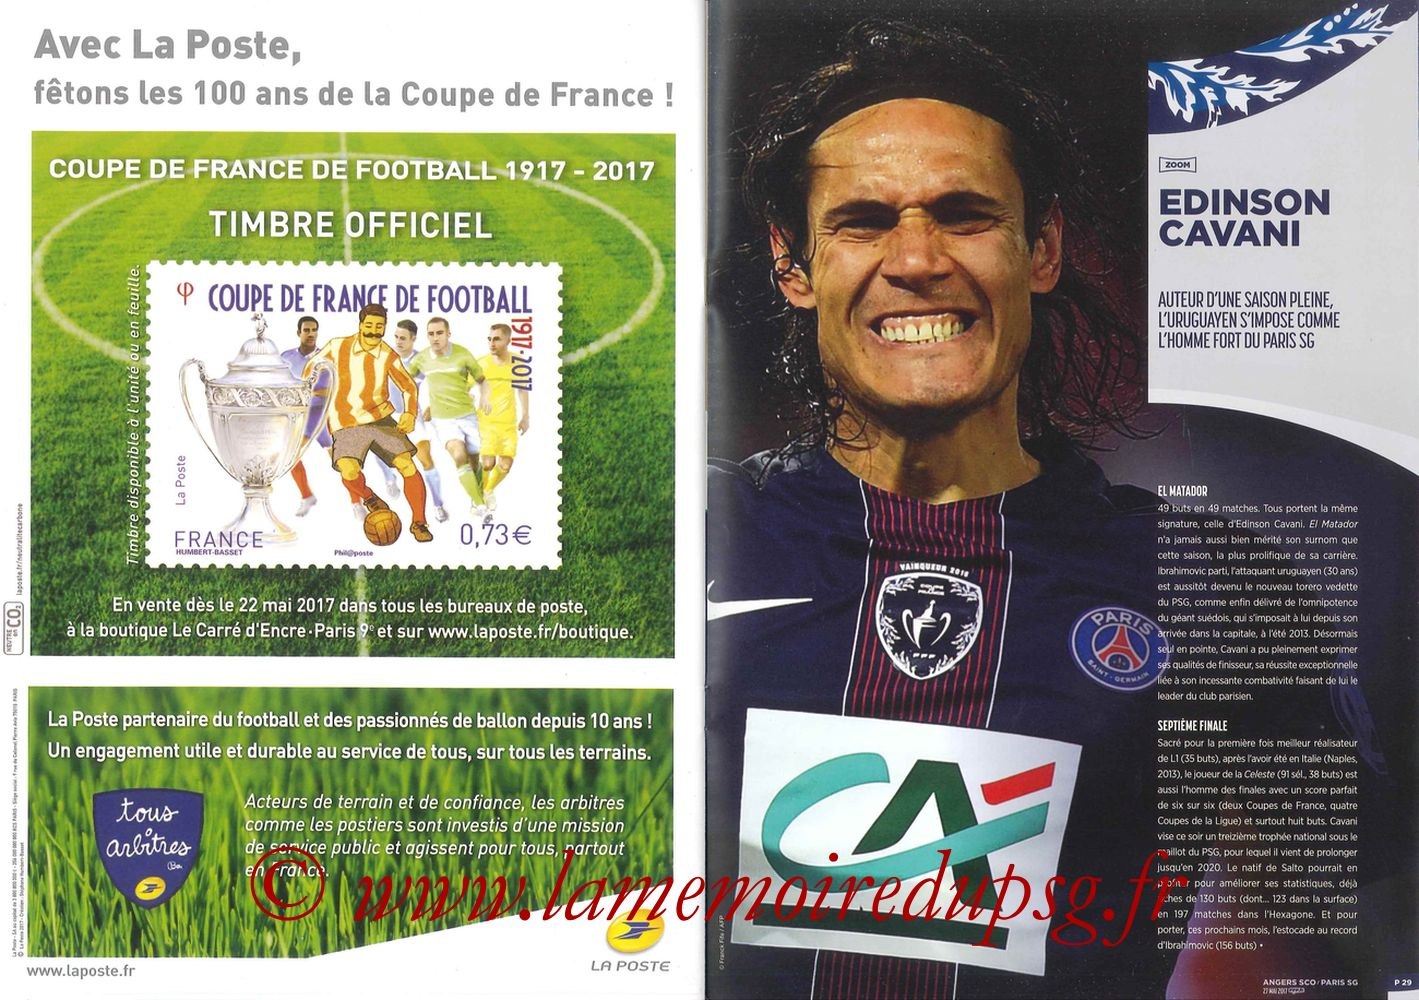 2017-05-27  Angers-PSG (Finale CF à Saint-Denis, Programme officiel) - Pages 28 et 29